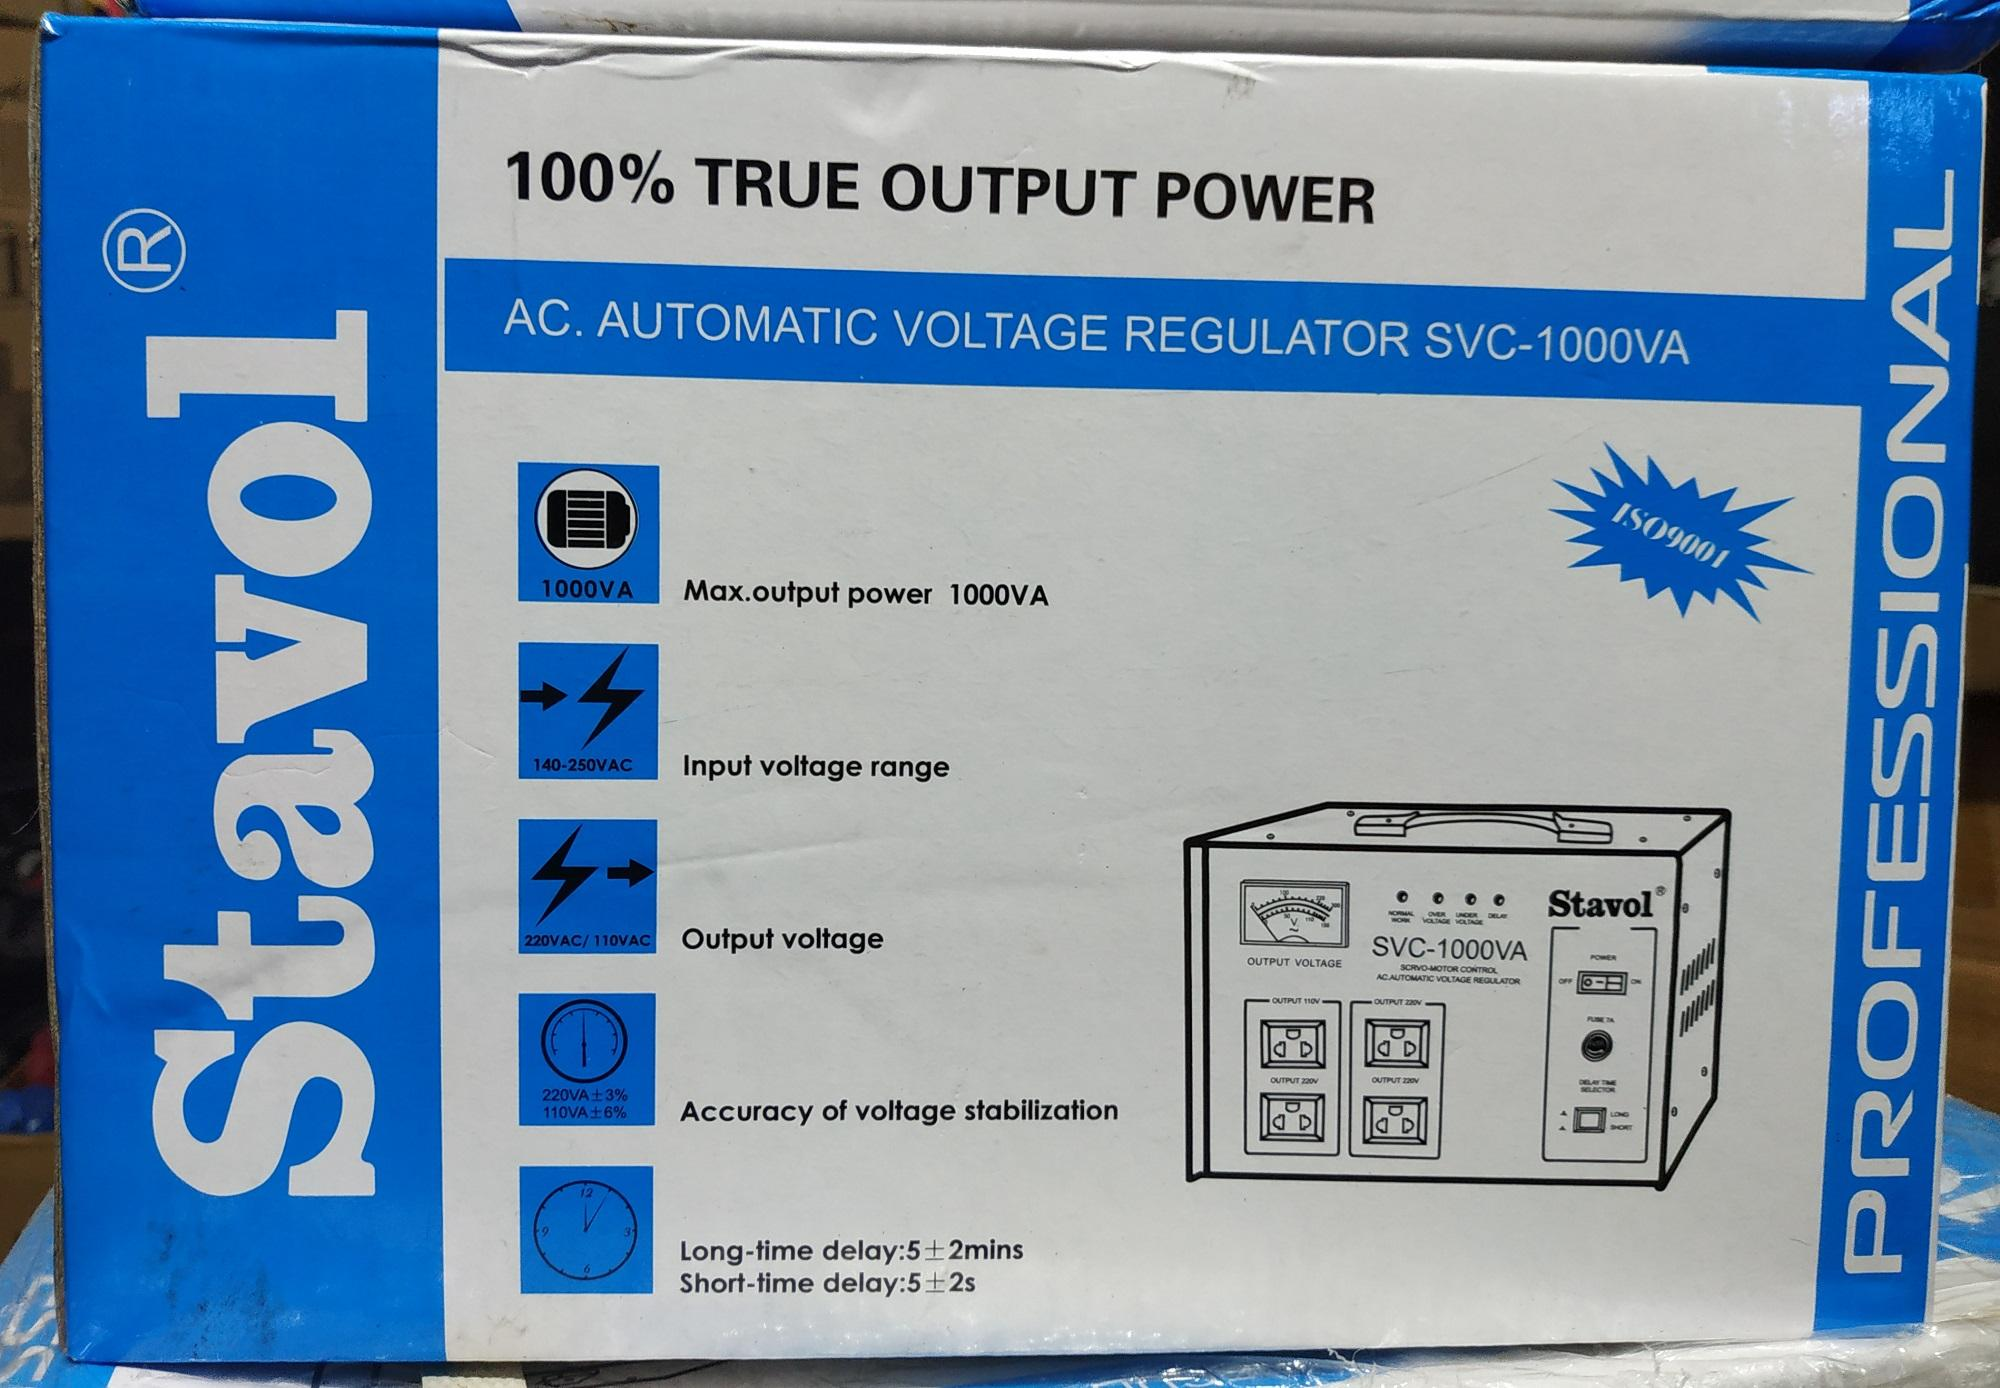 Stavol Philippines Price List Power Supply For Sale Lazada Circuit Breakers Meiji Electric Electrical Supplier 1000w Avr With Time Delay